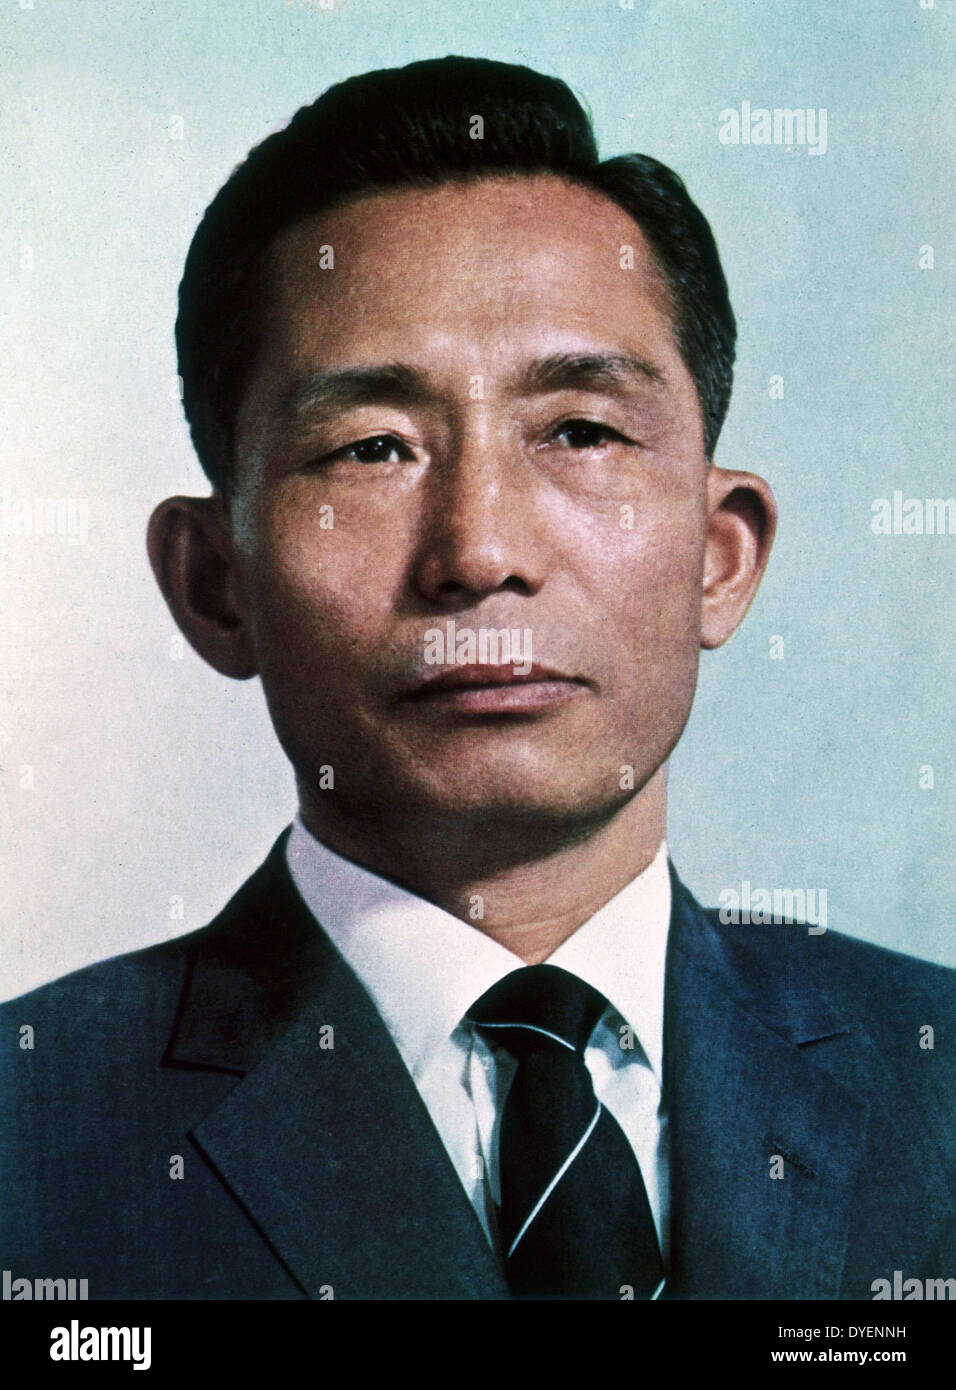 Park Chung-hee Korean general and statesman who led South Korea from 1961 until his assassination in 1979. - Stock Image